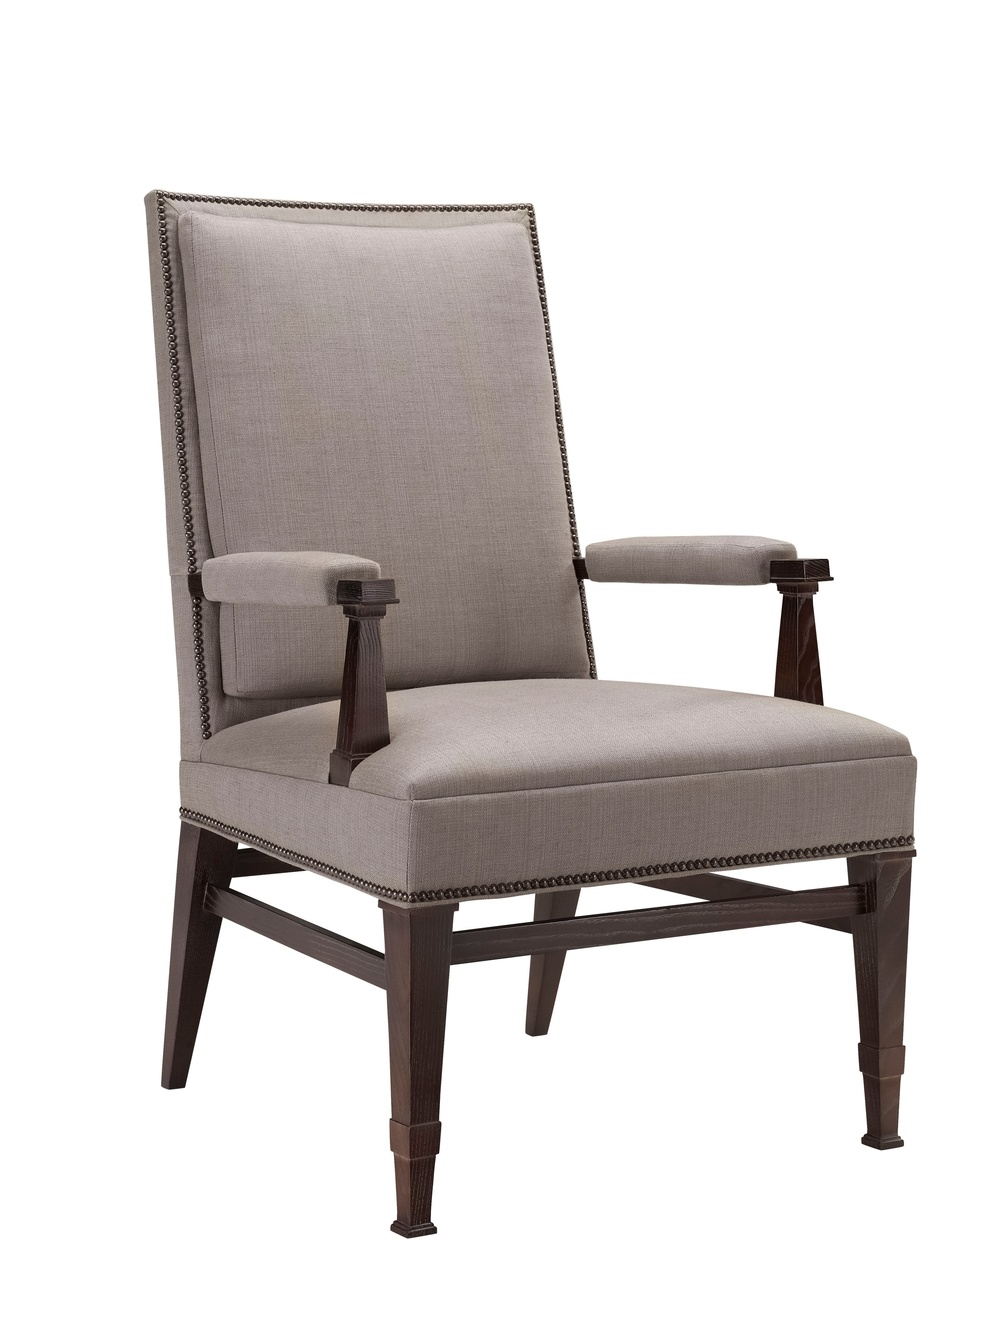 Hickory Chair - Atelier Arm Chair